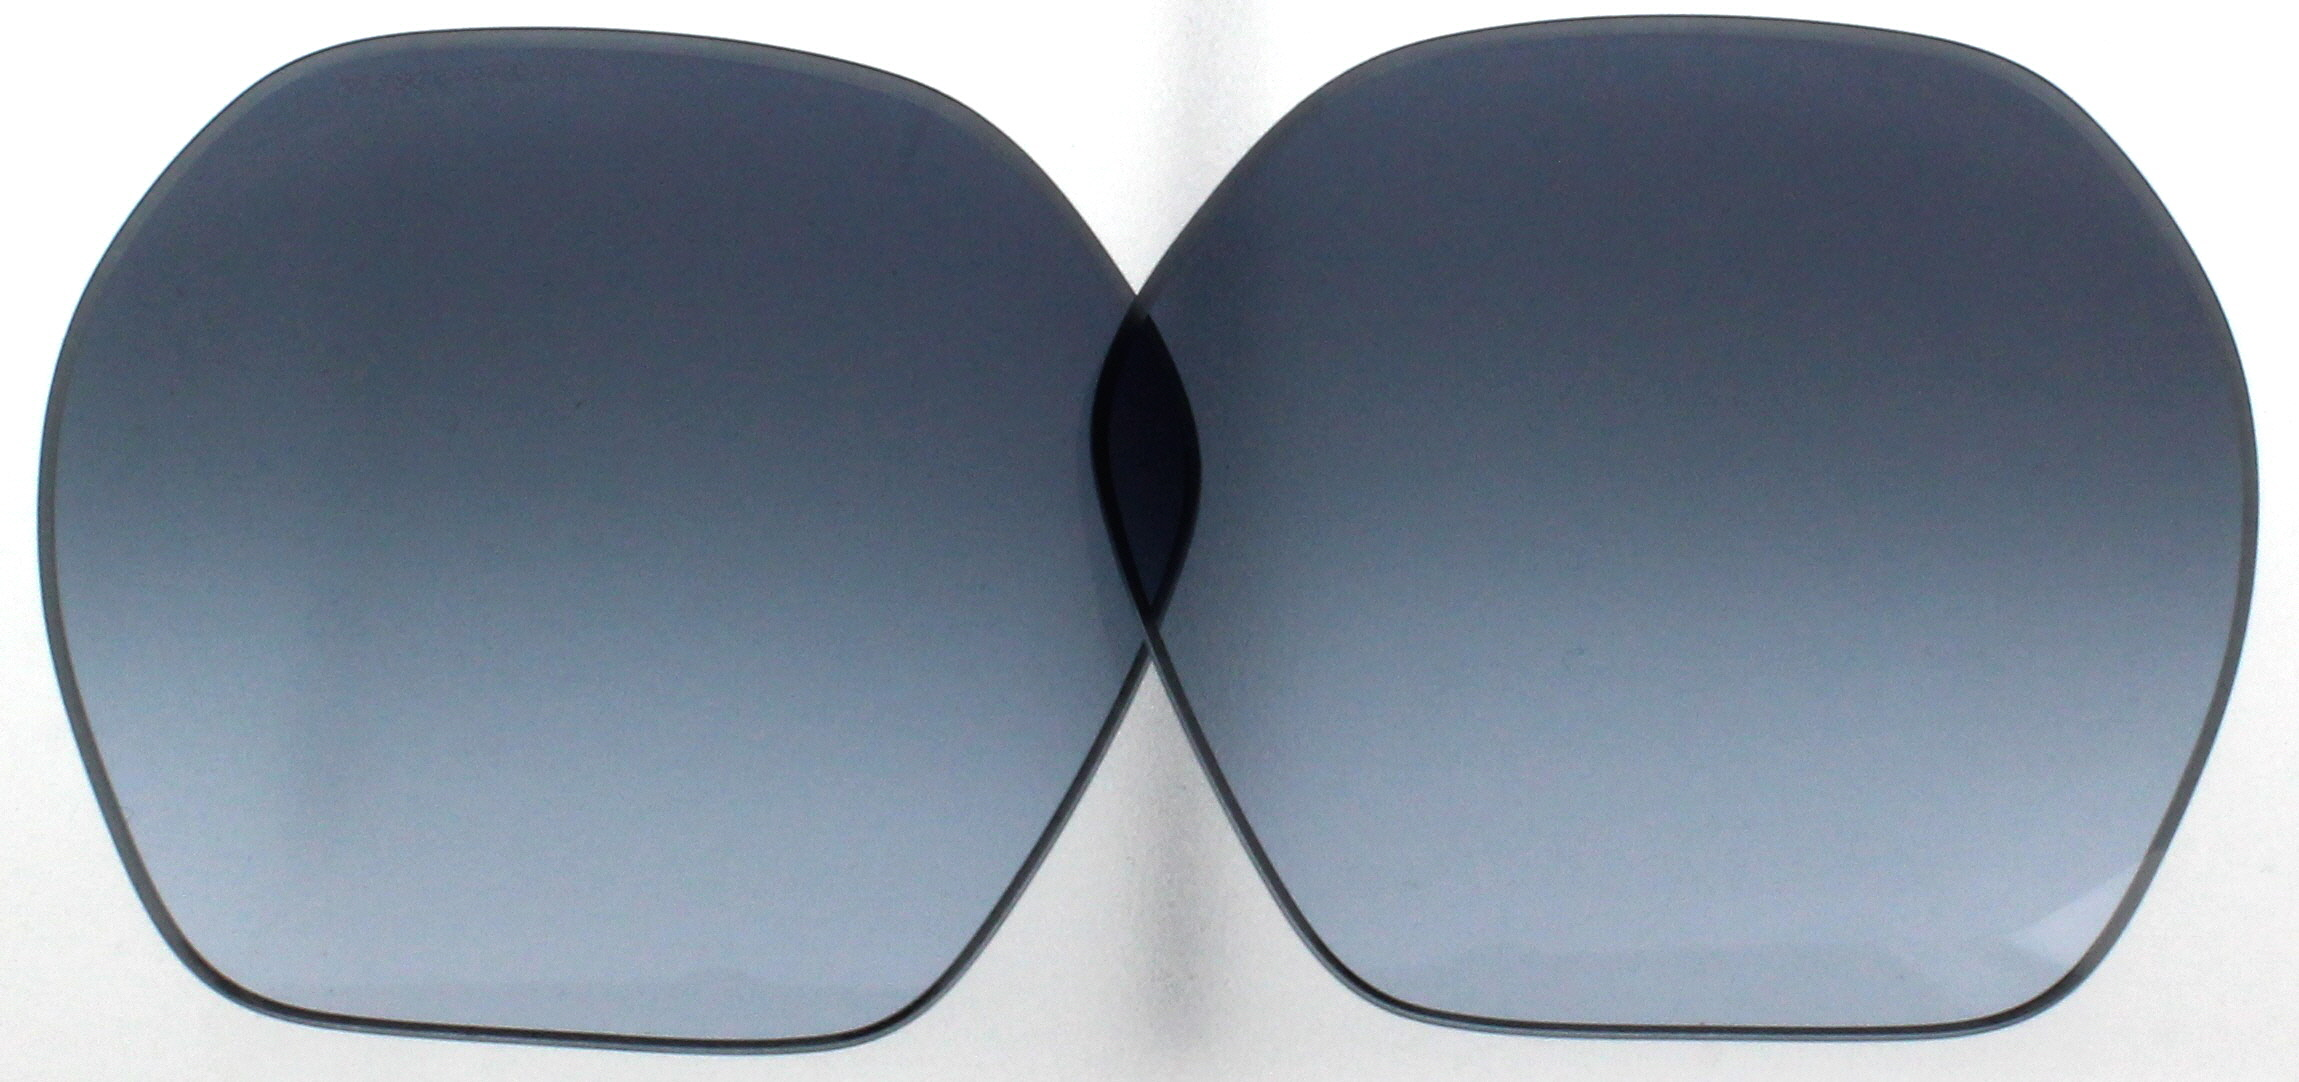 5993df4b3862 Image is loading PRADA-Replacement-Lenses-PR06SS-Blue-Gradient-56MM